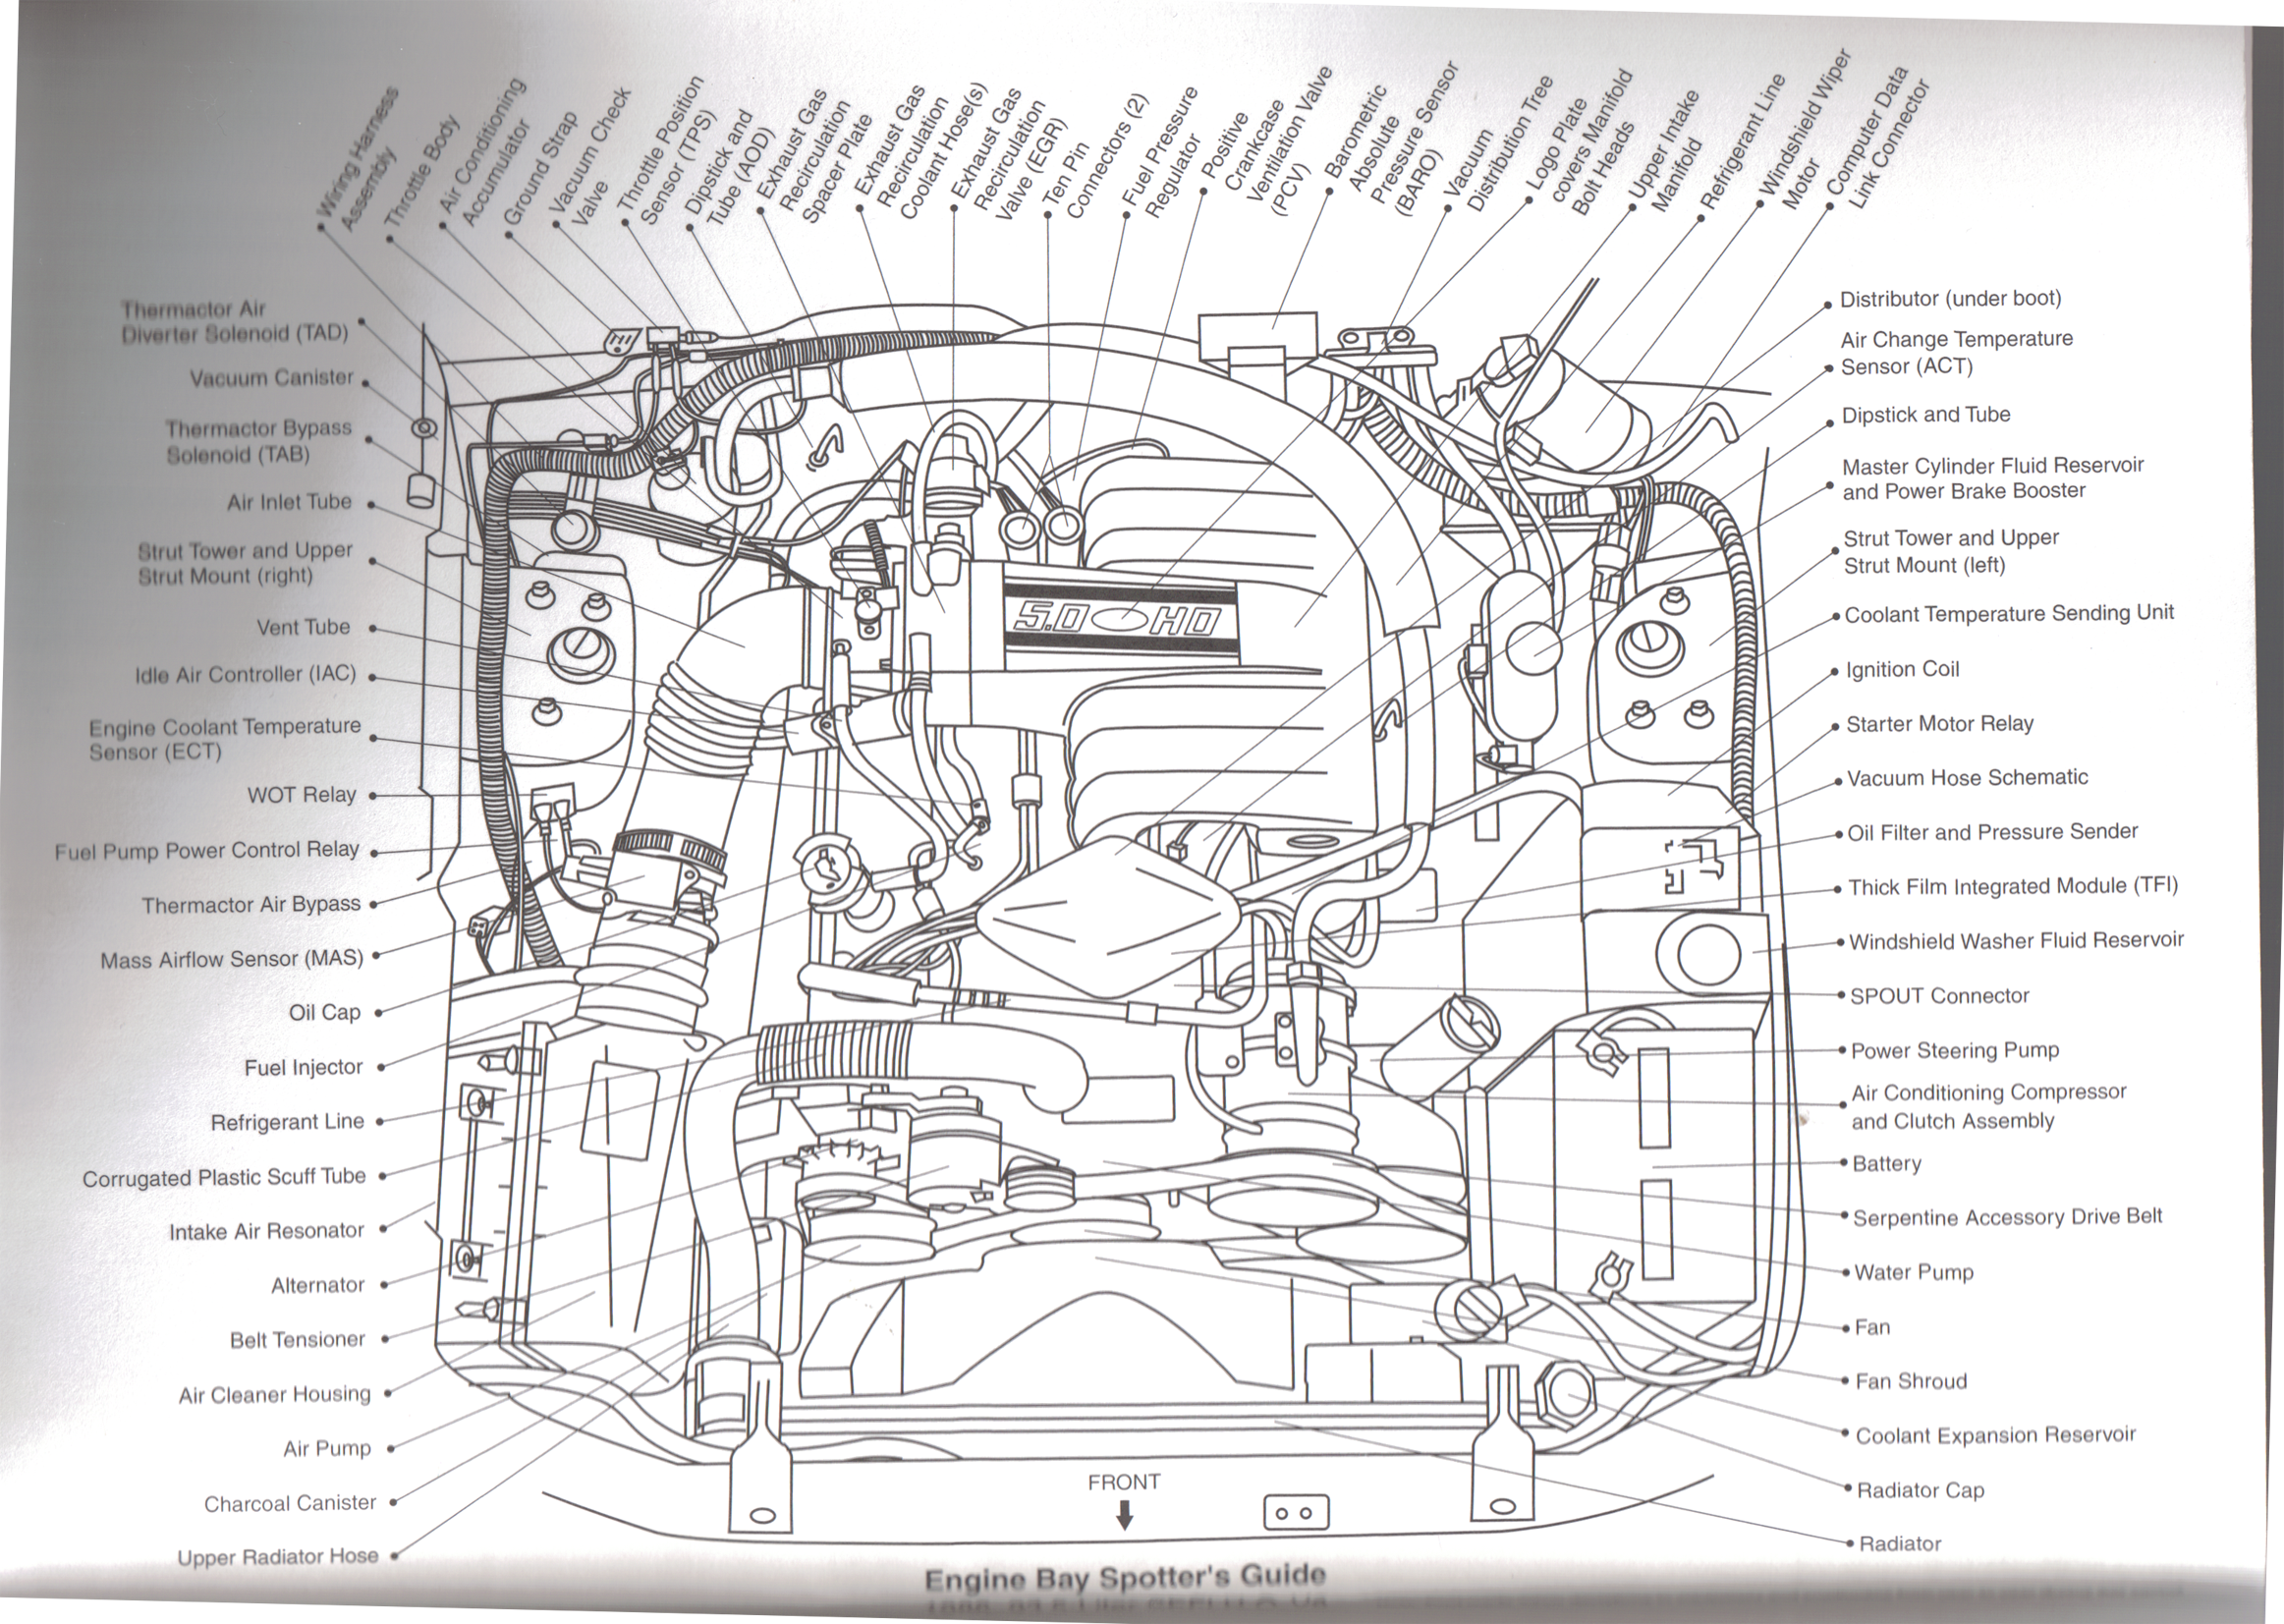 1987 1993 foxbody 5.0 sefi v8 engine part diagram everything you need to know about 1979 1993 foxbody mustangs 89 mustang 5.0 engine wiring diagram at sewacar.co